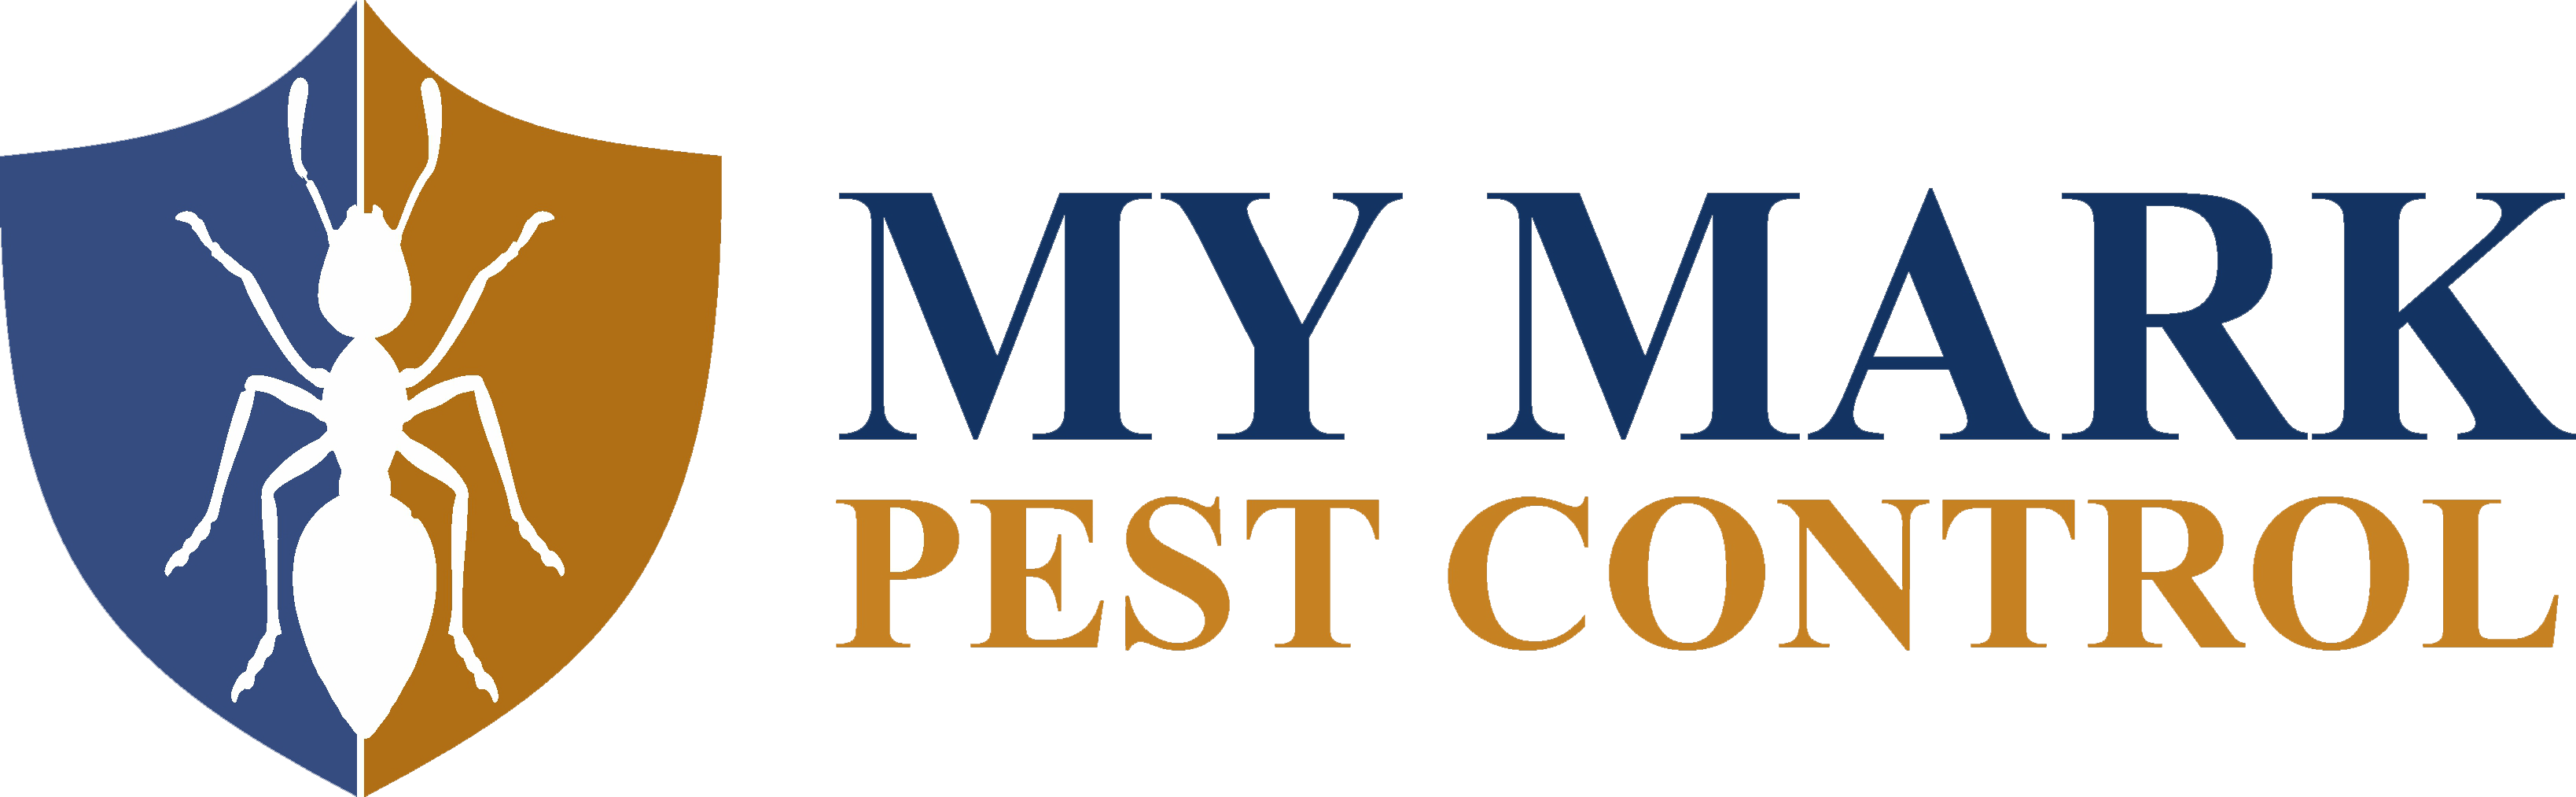 Industry Pest Control in Hyderabad